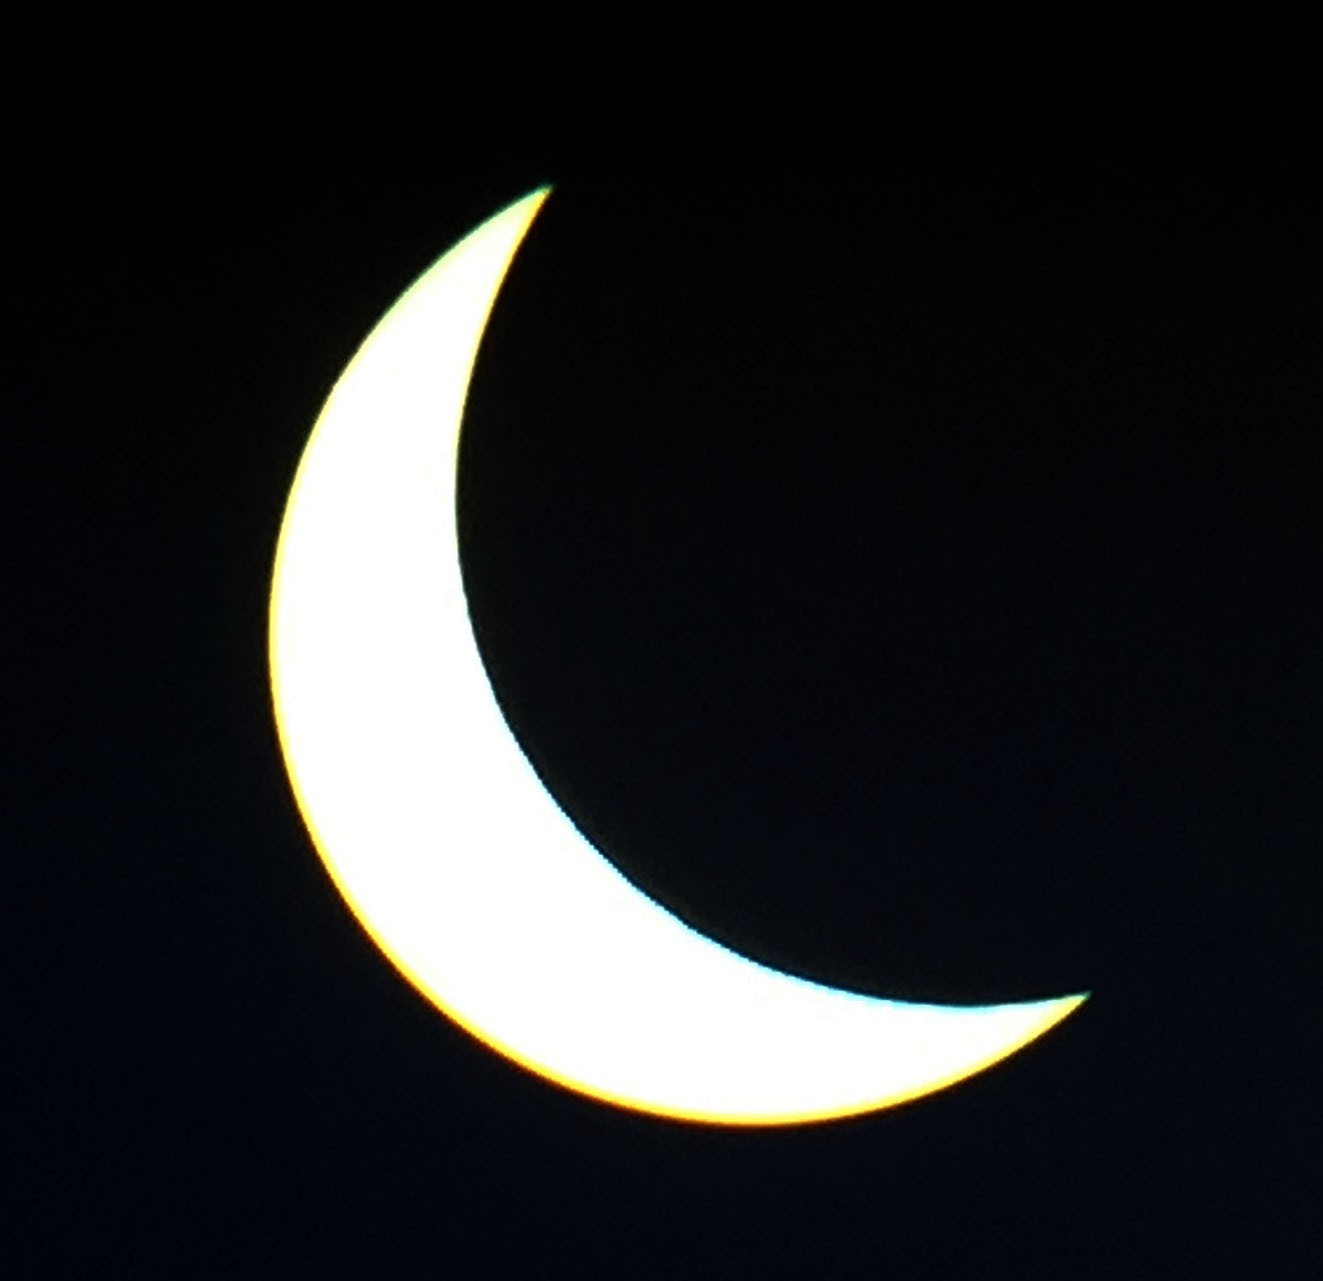 Sonnenfinsternis-2015-03-20_10-37-40-Apple-iPhone-6-3770